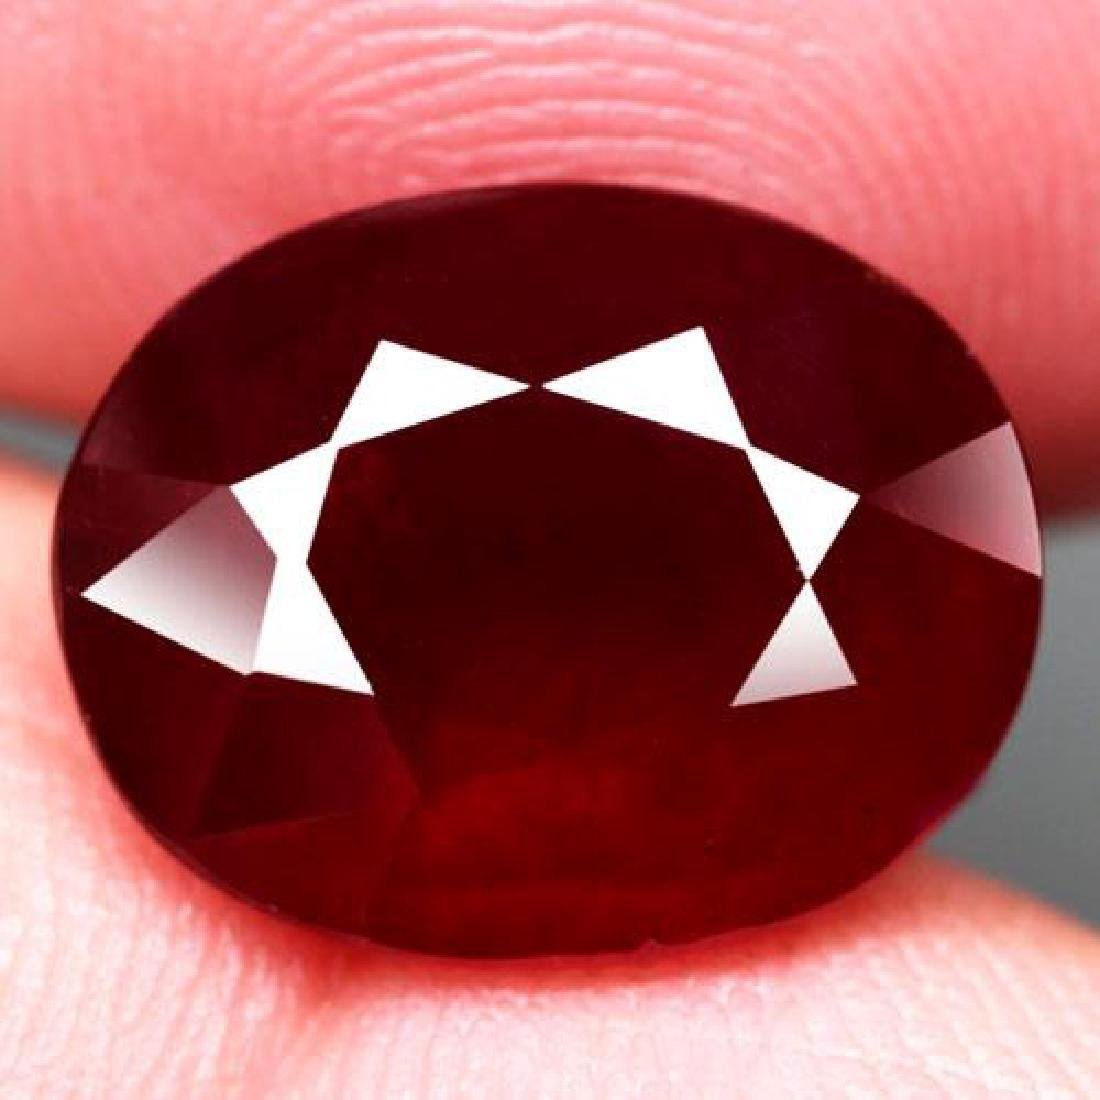 8.46 Carat Composite Loose Ruby